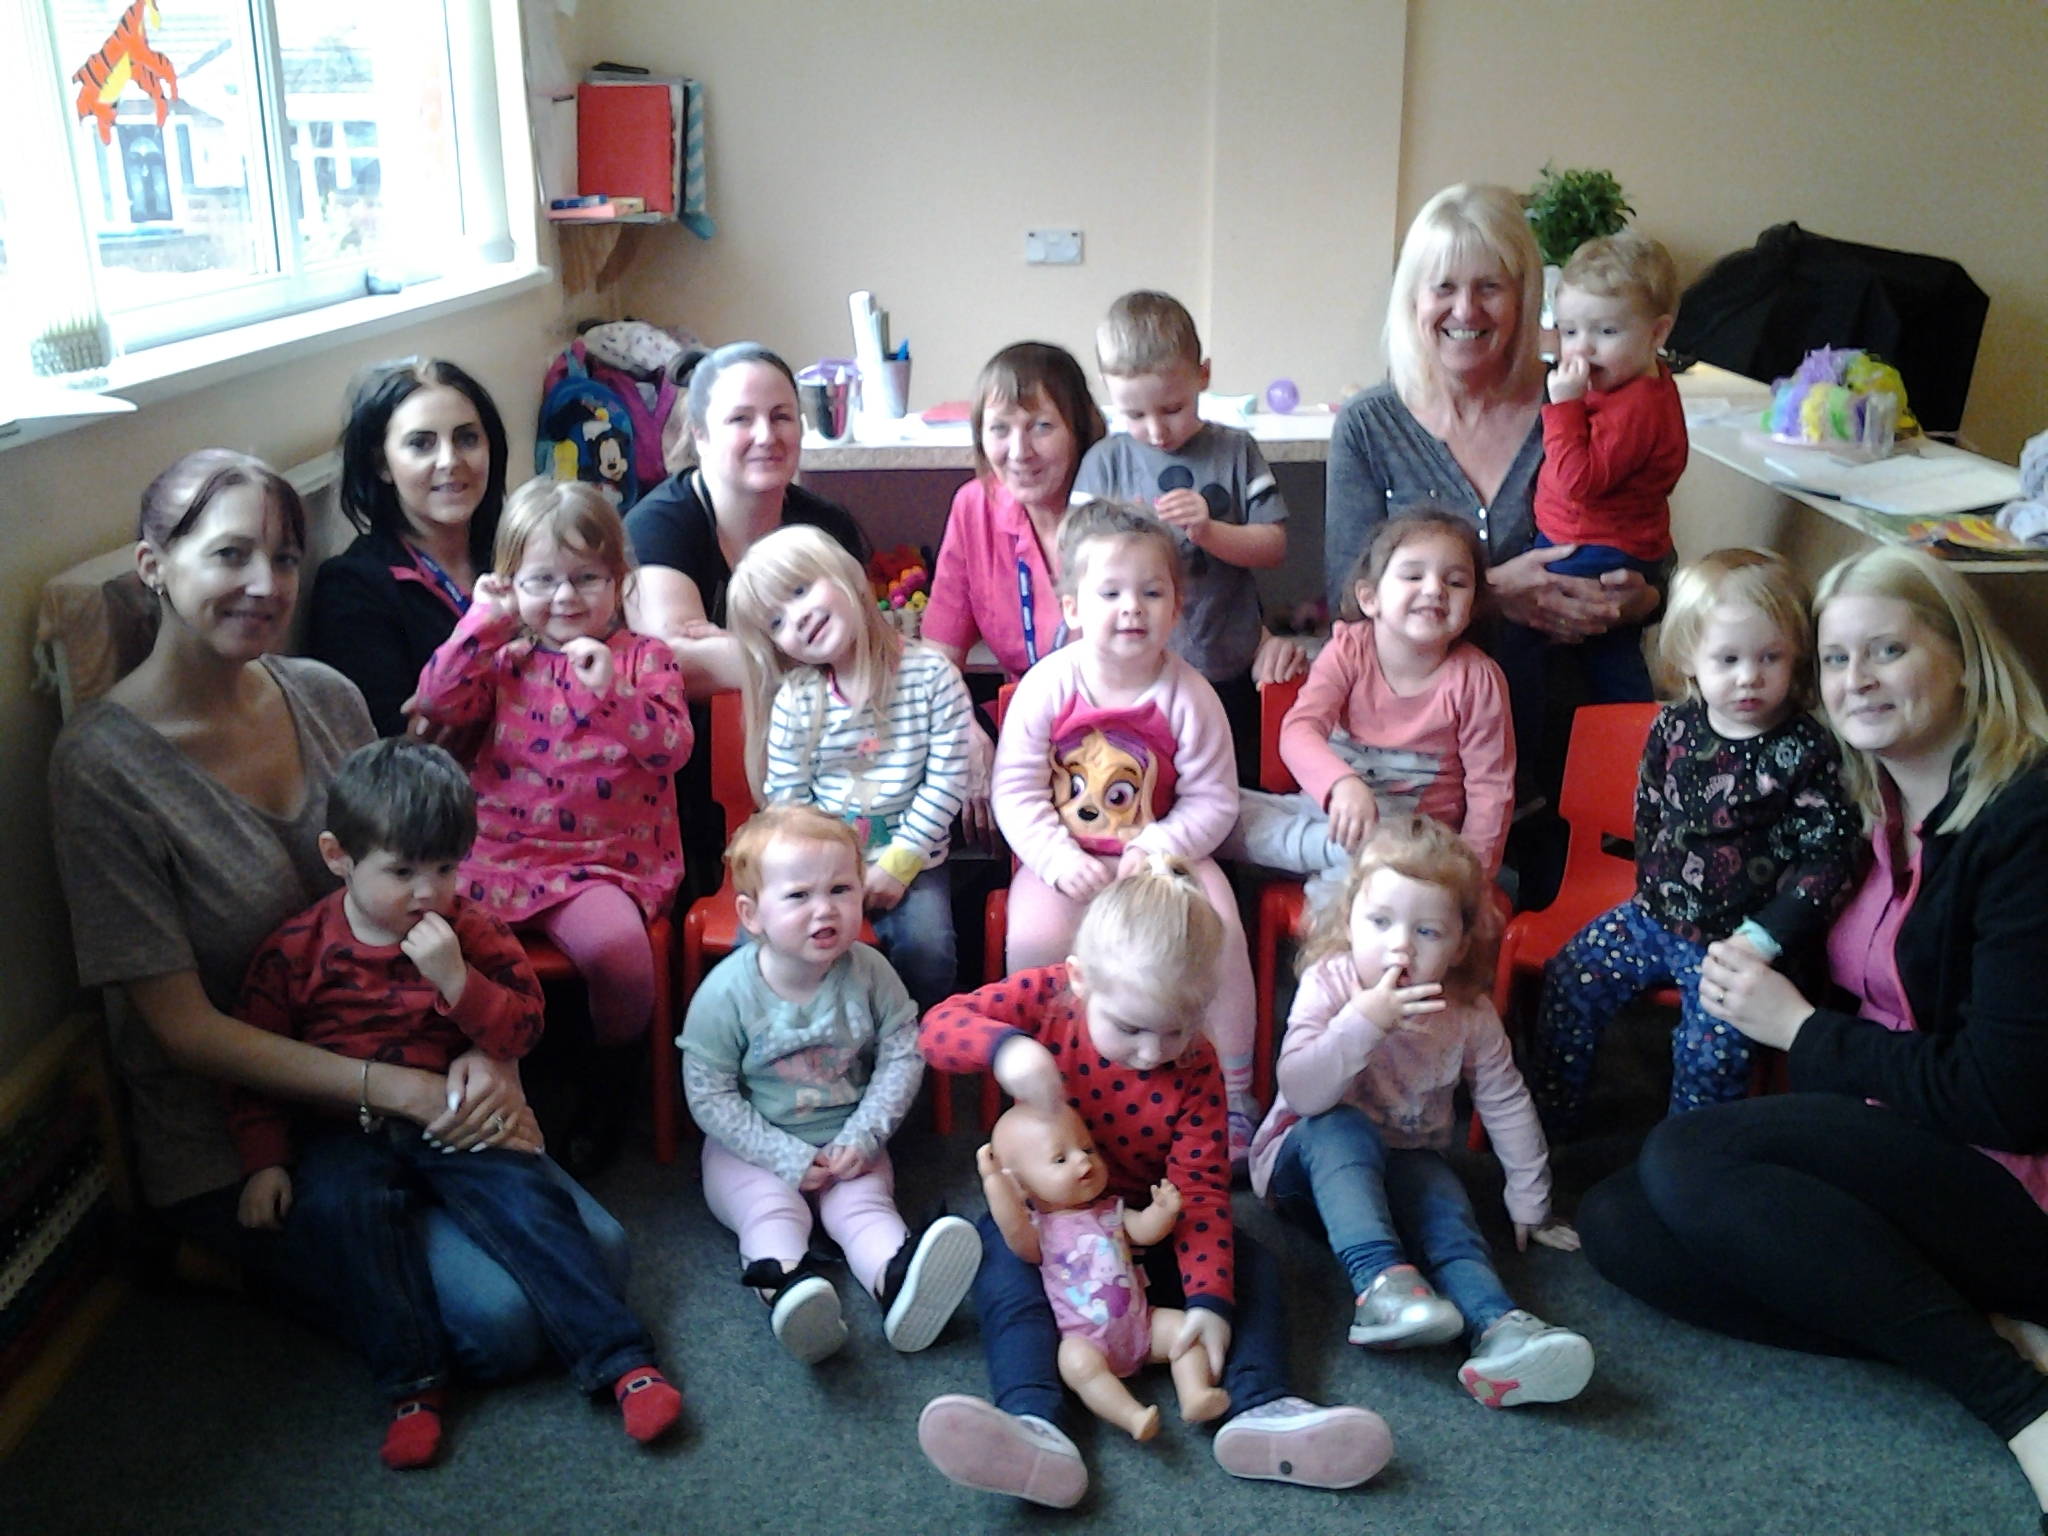 All smiles for staff and children at the nursery after its latest inspection result